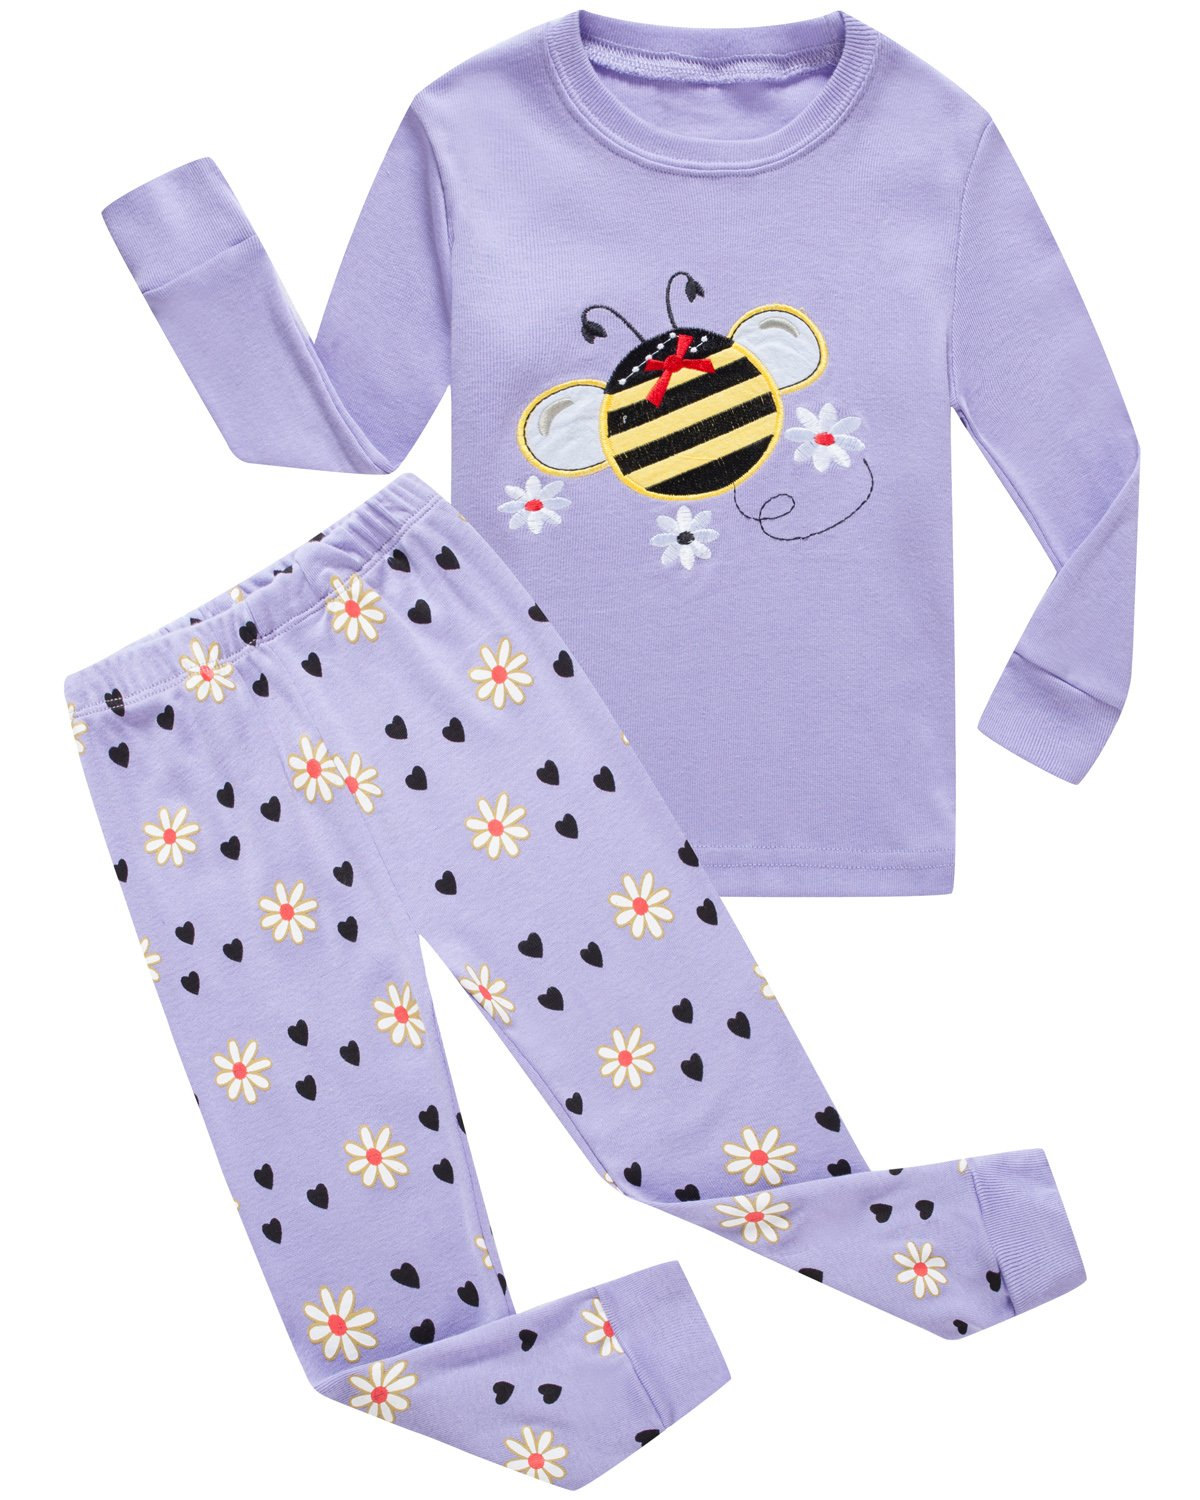 Girls Pajamas Bulldozer Little Kids Pjs Sets 100% Cotton Toddler Sleepwears FBA-679OWL